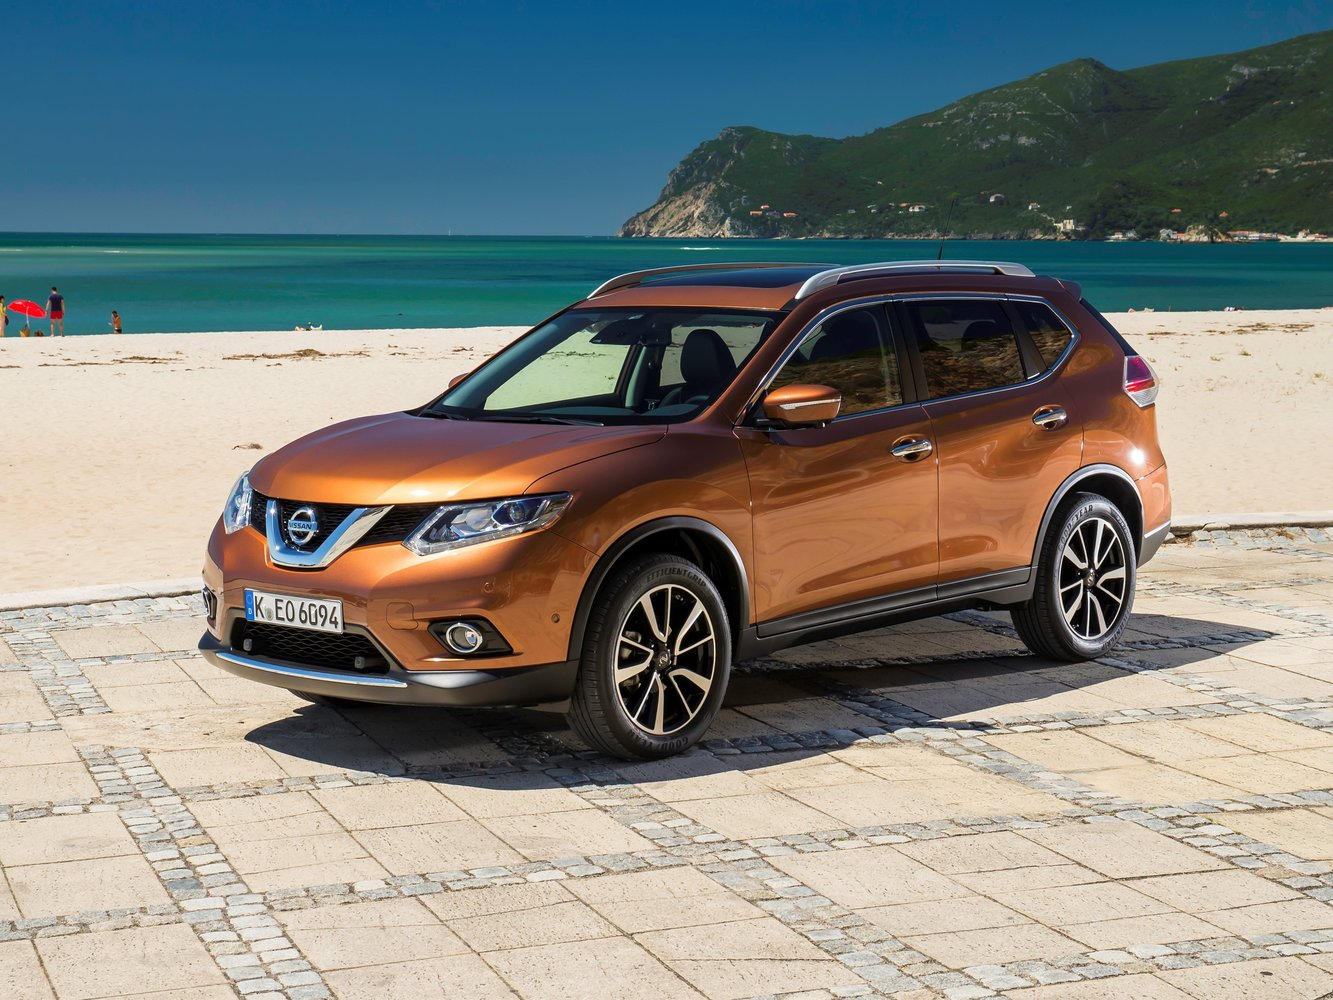 New-generation nissan x-trail prices announced